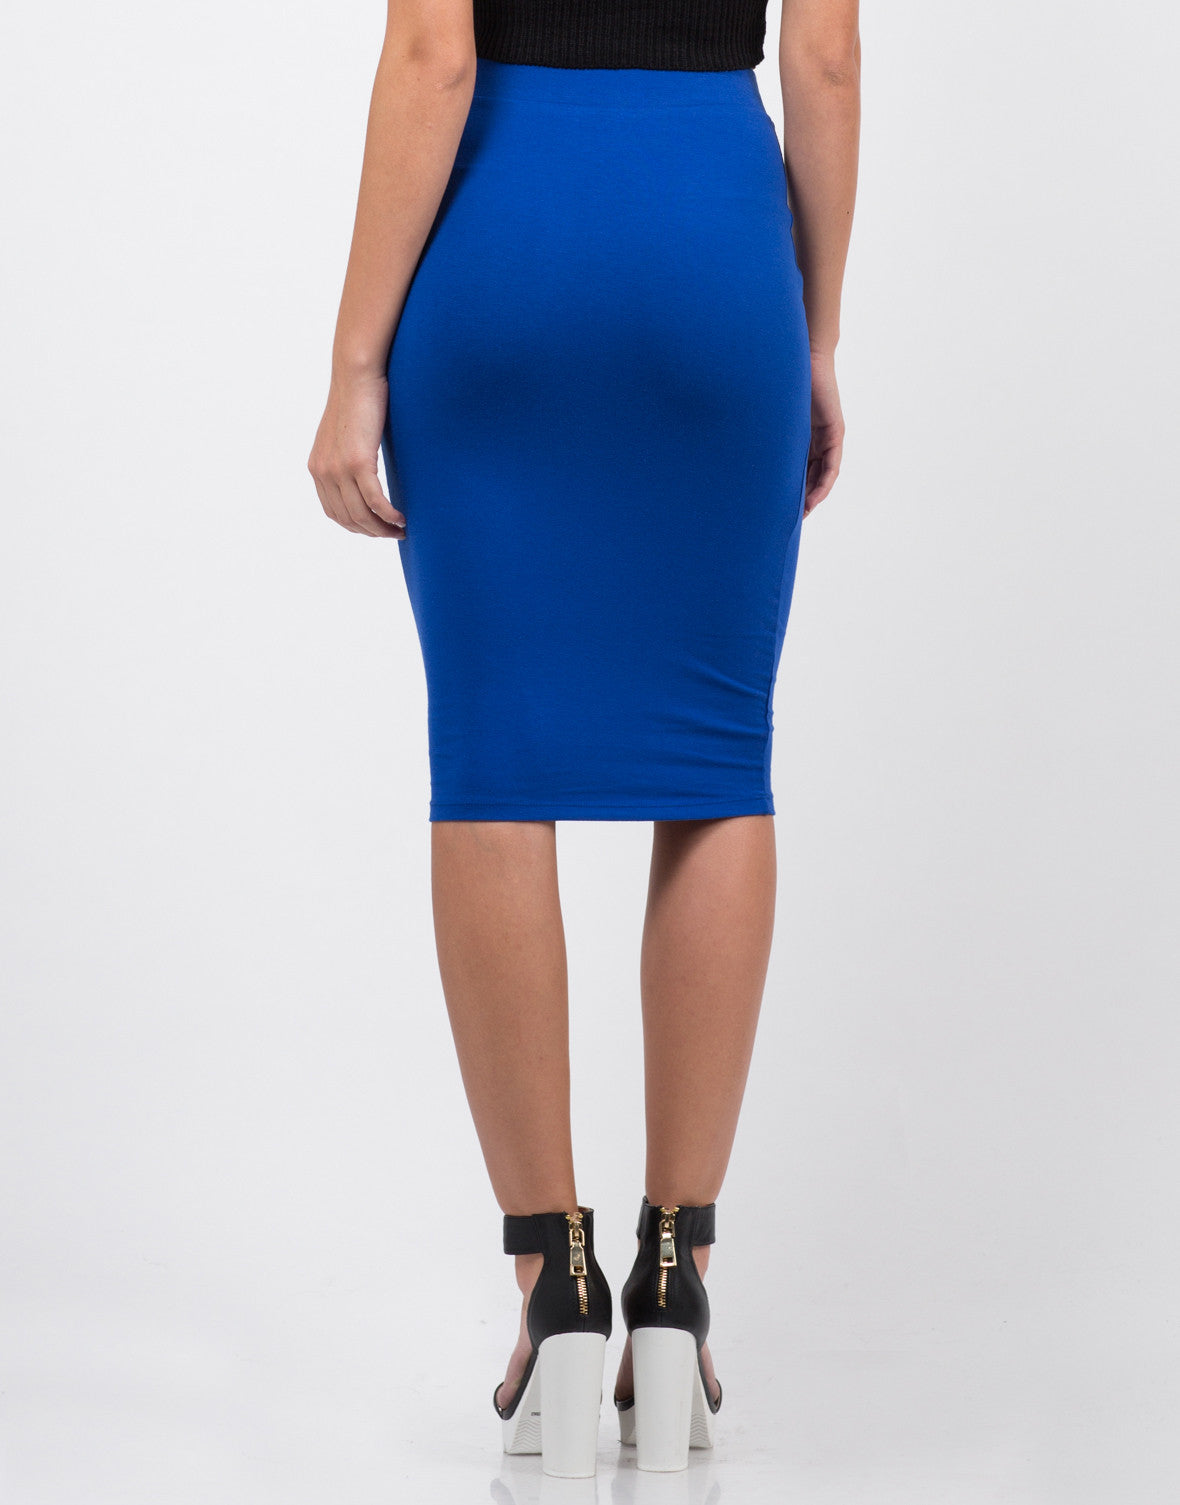 Back View of High Waisted Midi Skirt